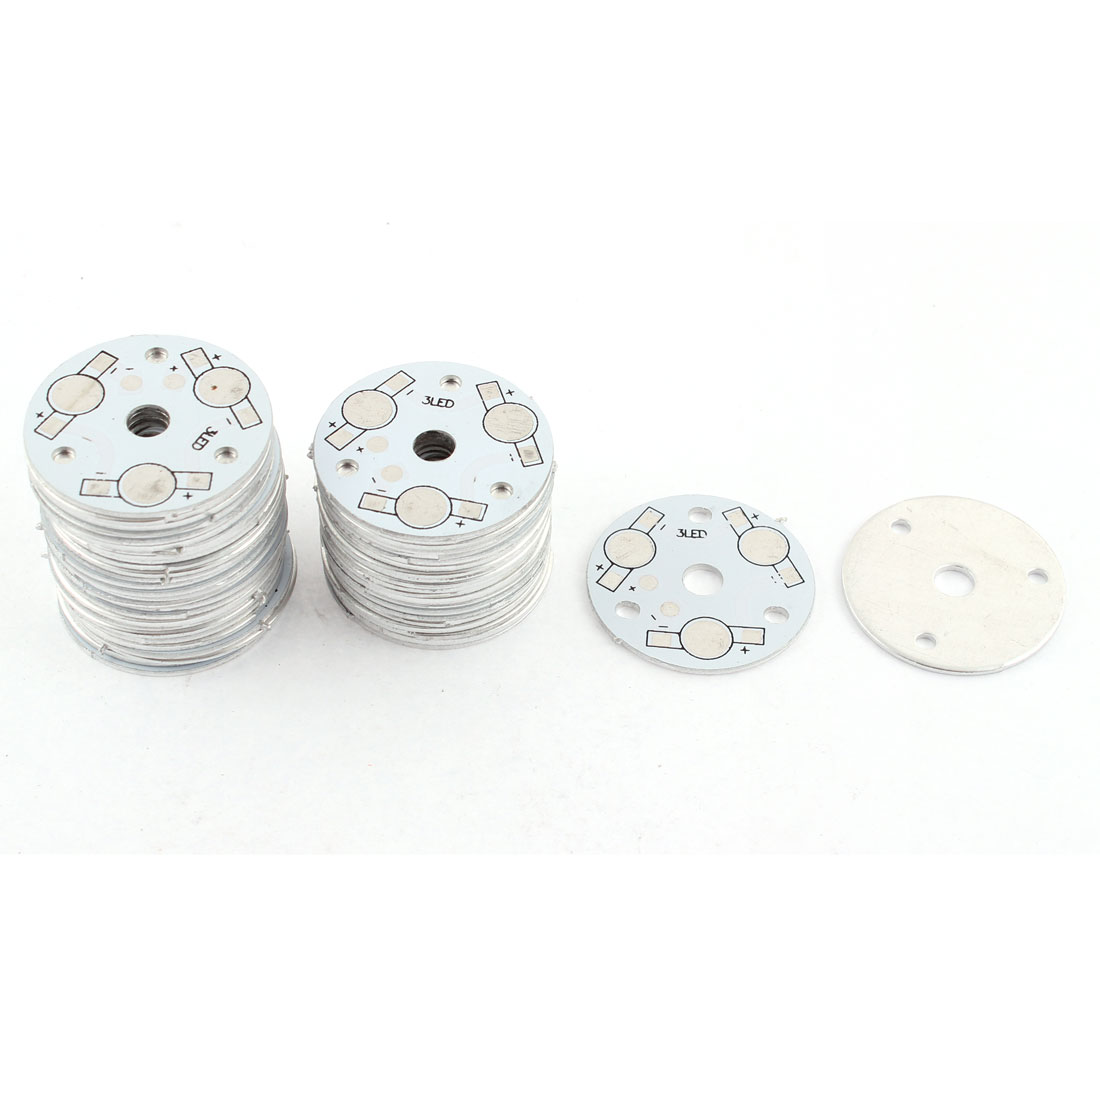 DIY 3x1W 3W 5W LED Aluminum Base Round Board Circuit PCB Plate 35mm 50pcs